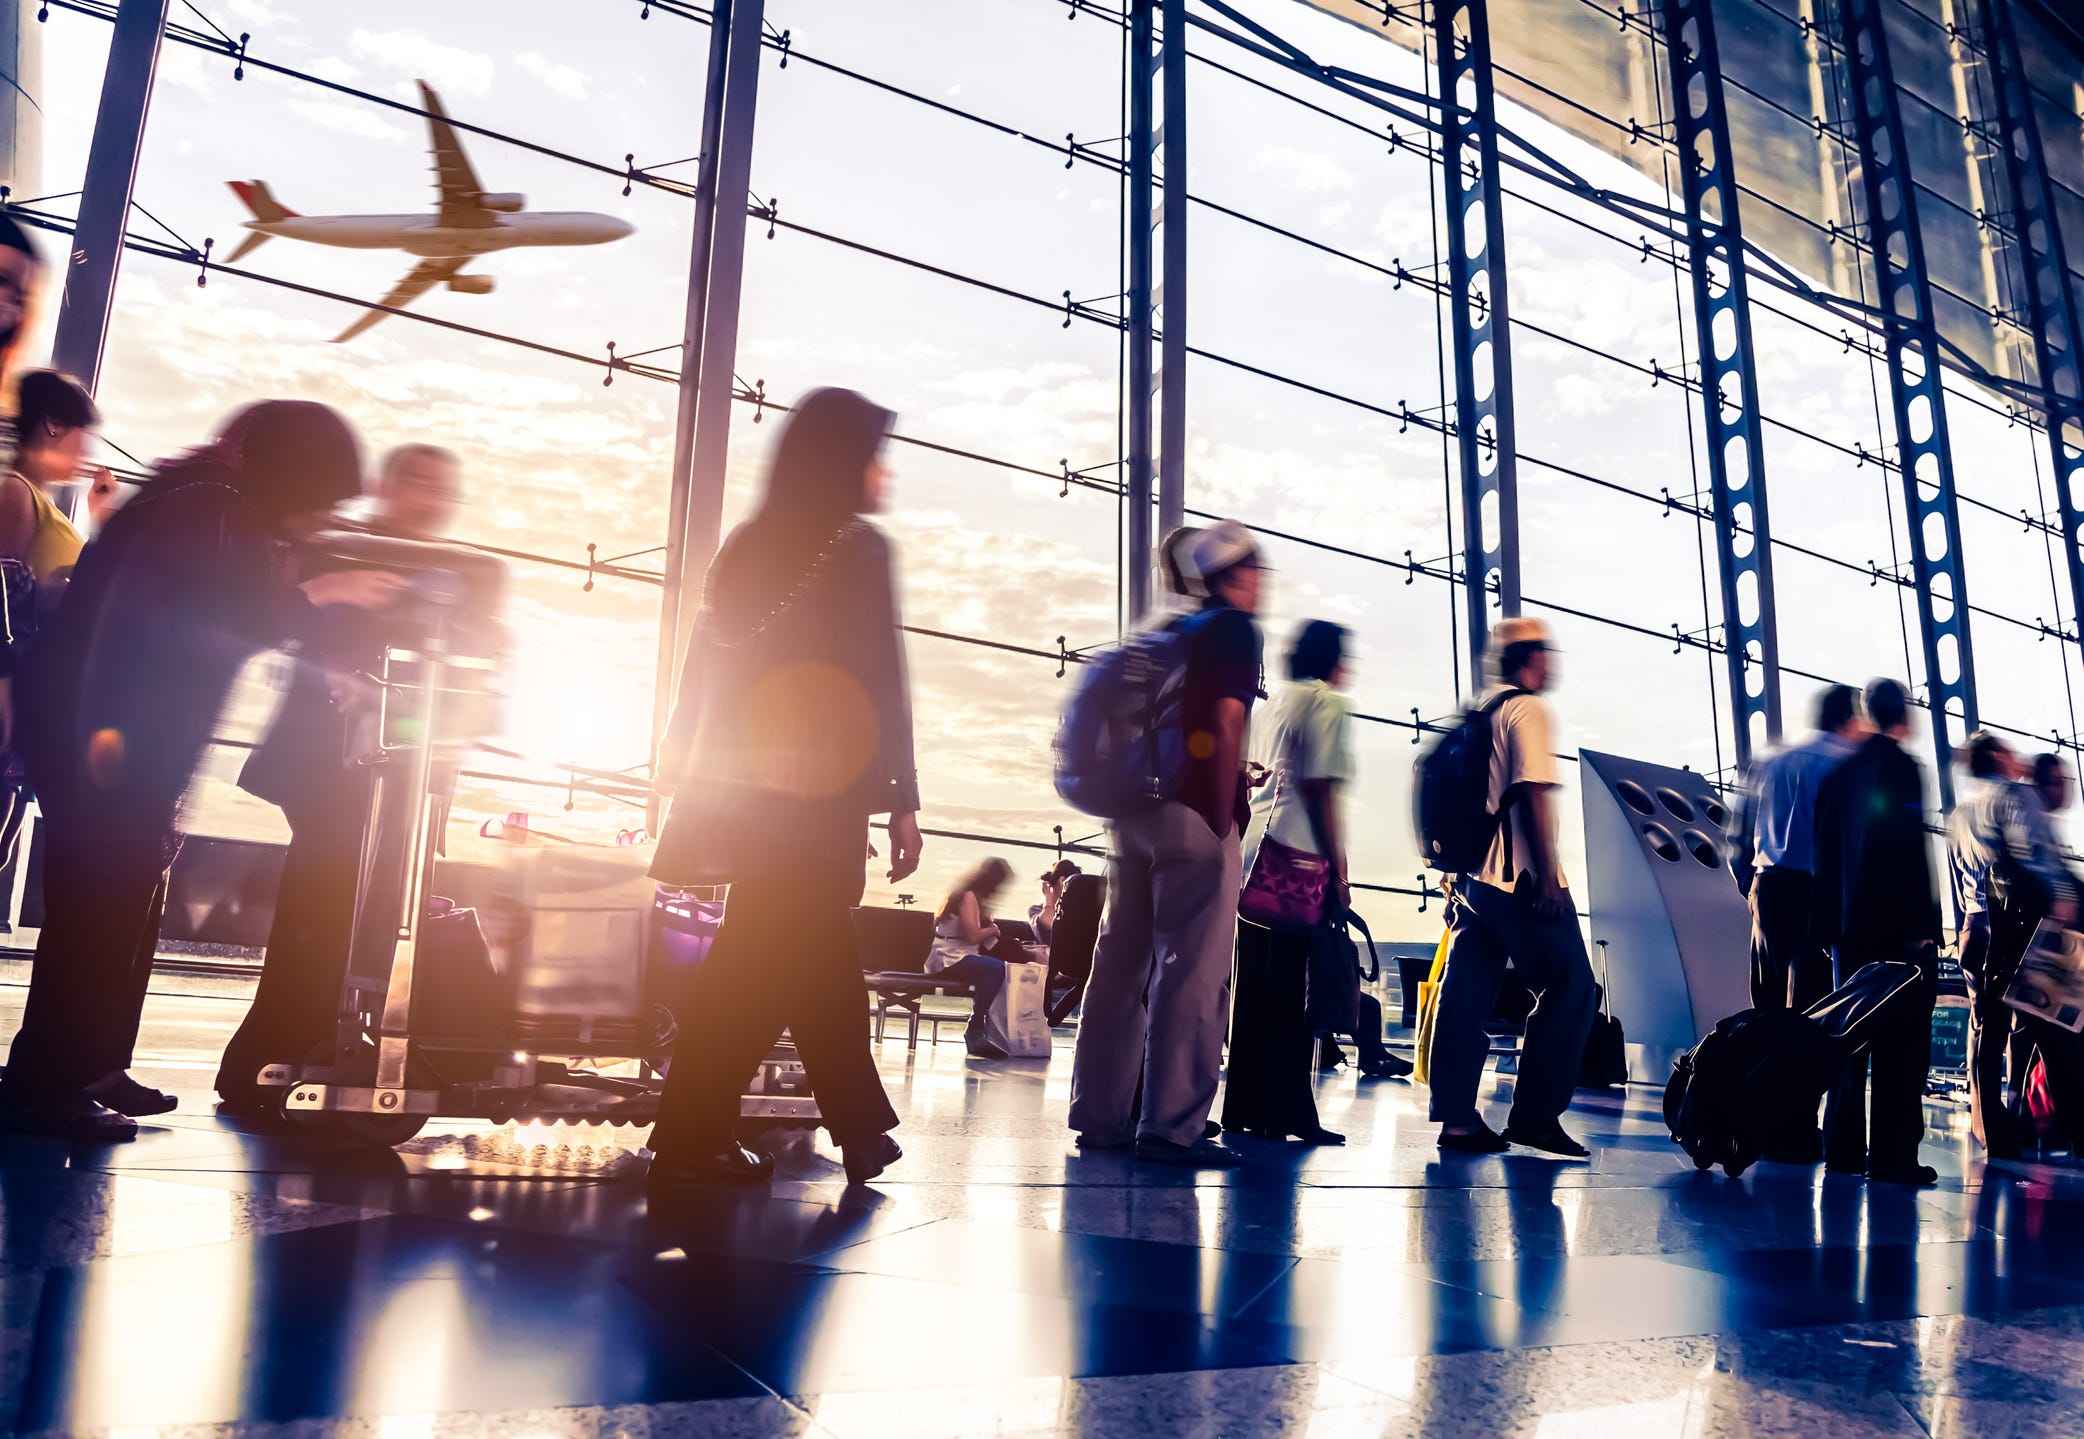 Air travel is back: What to know about summer travel